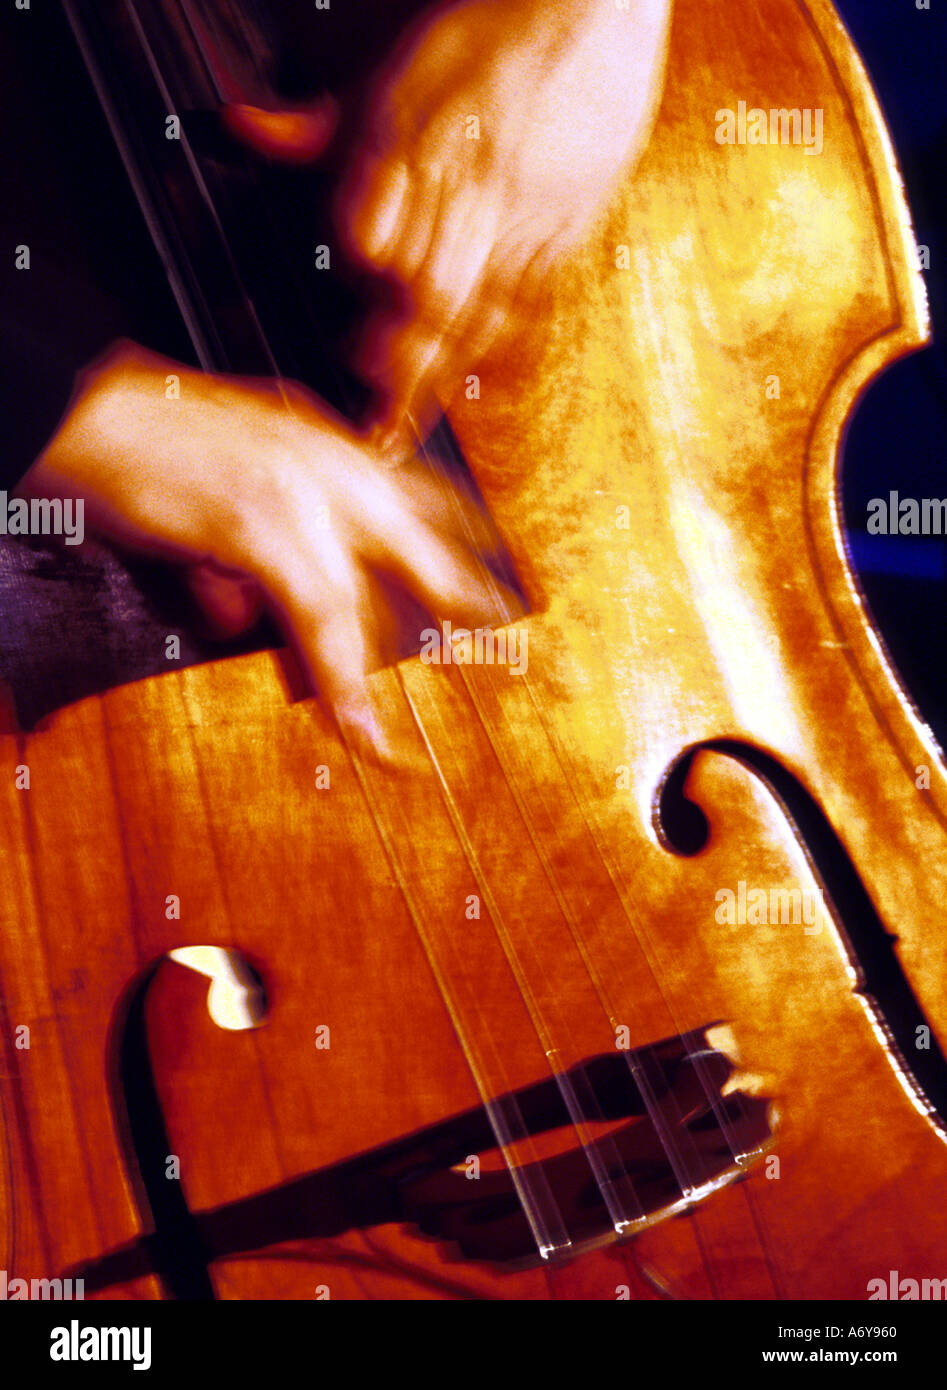 Double Bass being played - Stock Image